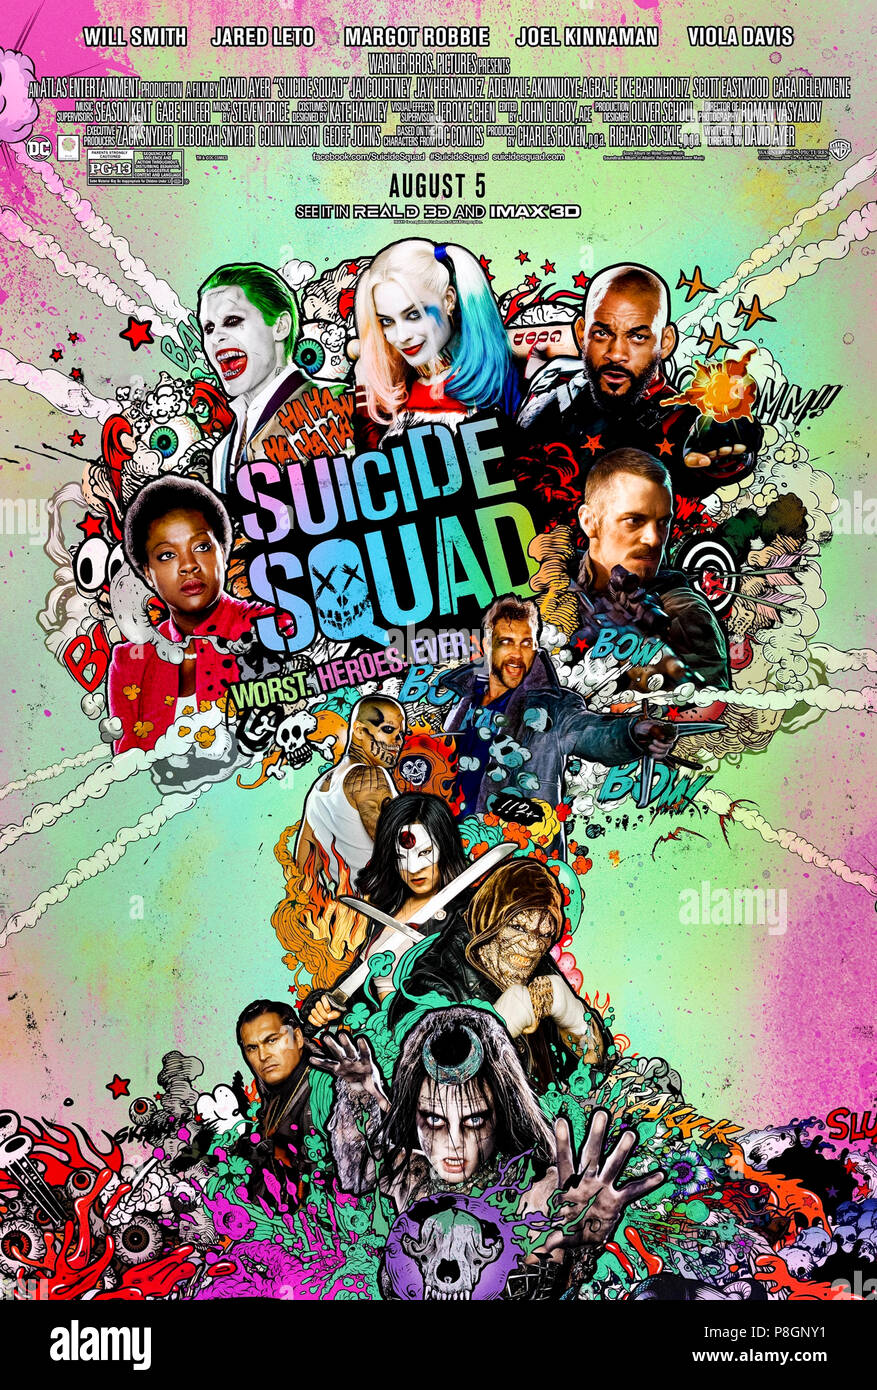 Suicide Squad (2016) directed by David Ayer and starring Will Smith, Jared Leto, Margot Robbie and Joel Kinnaman. A group of super villains is released from prison to battle the Enchantress. - Stock Image